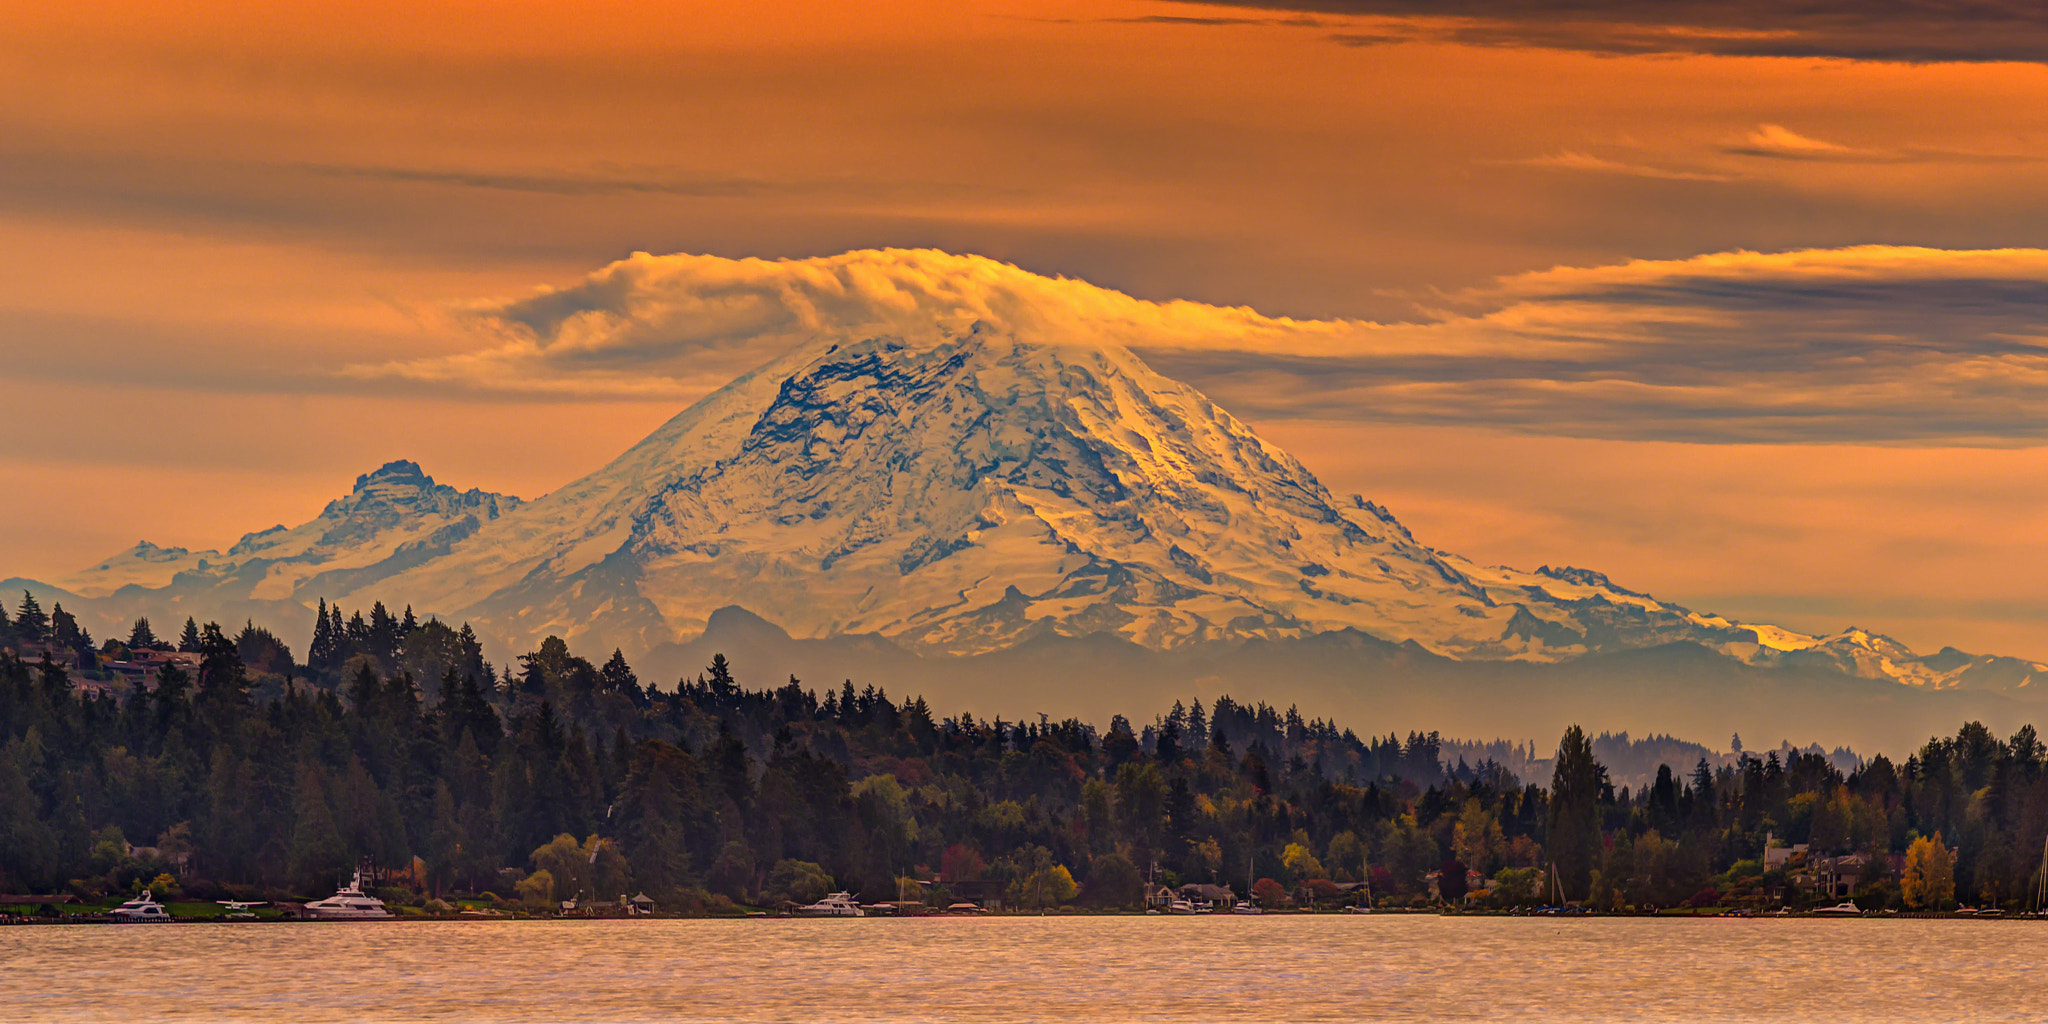 Photograph Mt Rainier at twilight from Seattle, WA, USA by Alvin Kroon on 500px